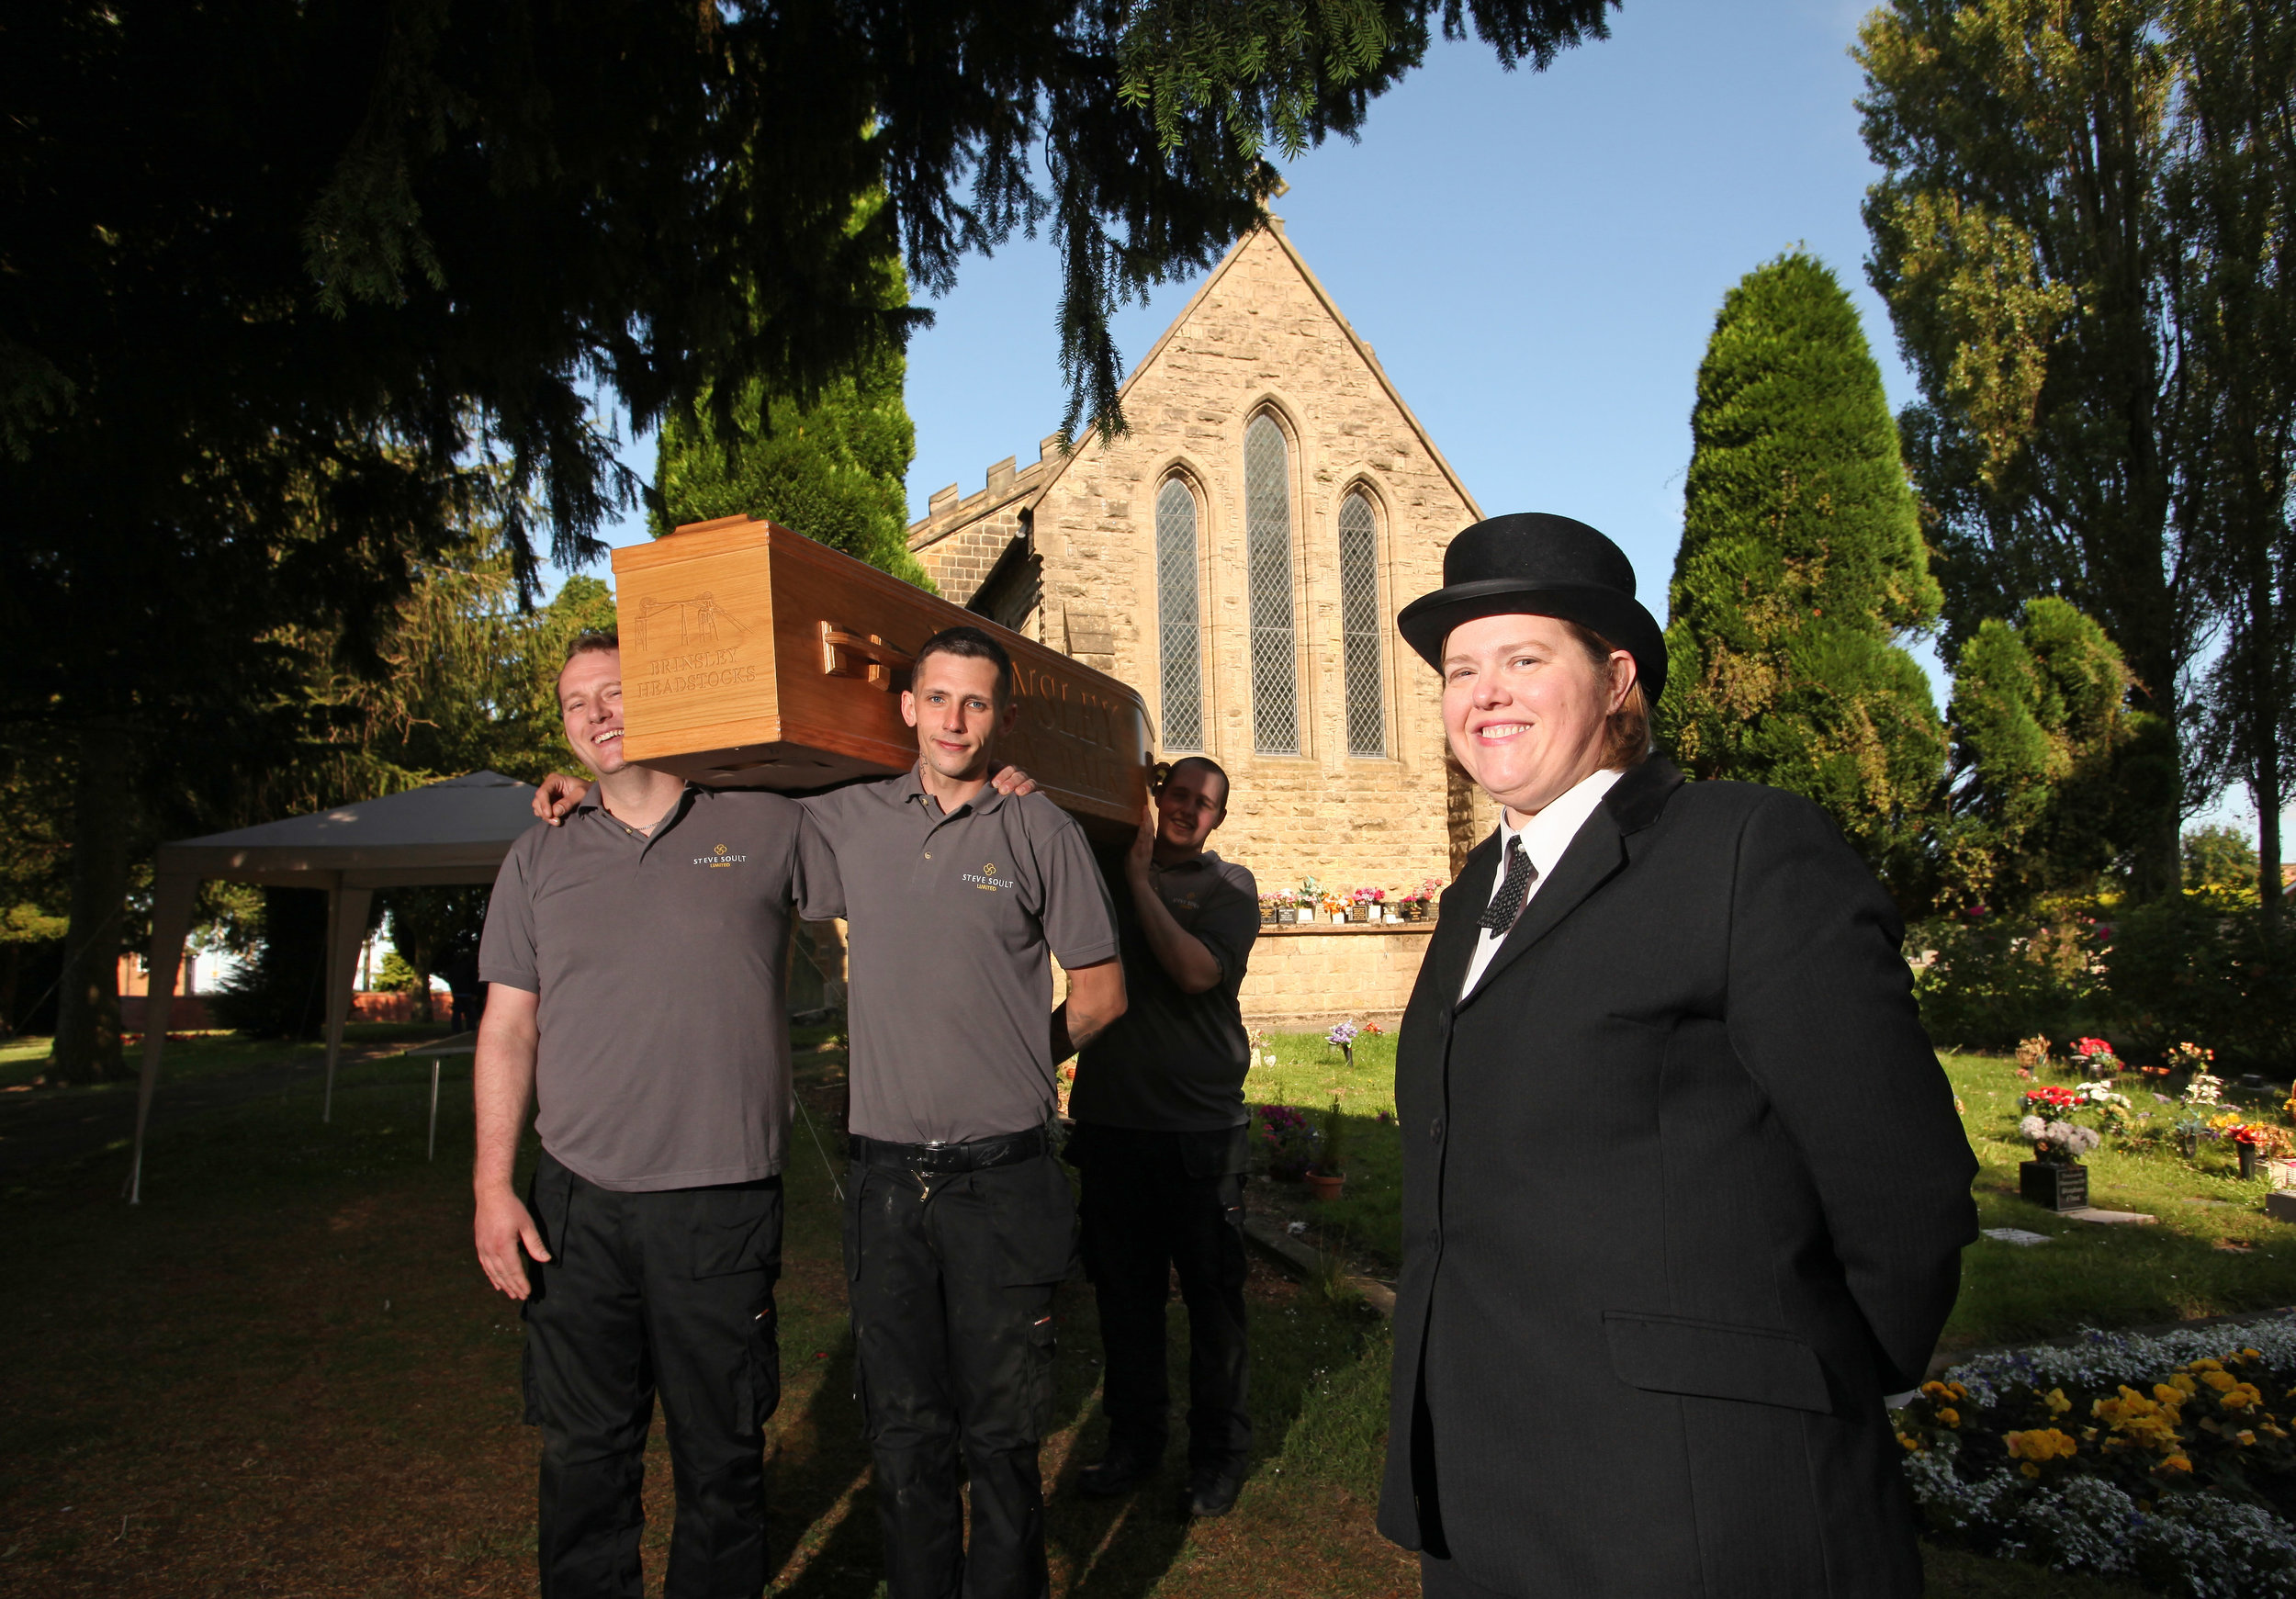 The annual Coffin Walk will take place in Brinsley, Nottinghamshire in July. Penguin PR: public relations, media and communications